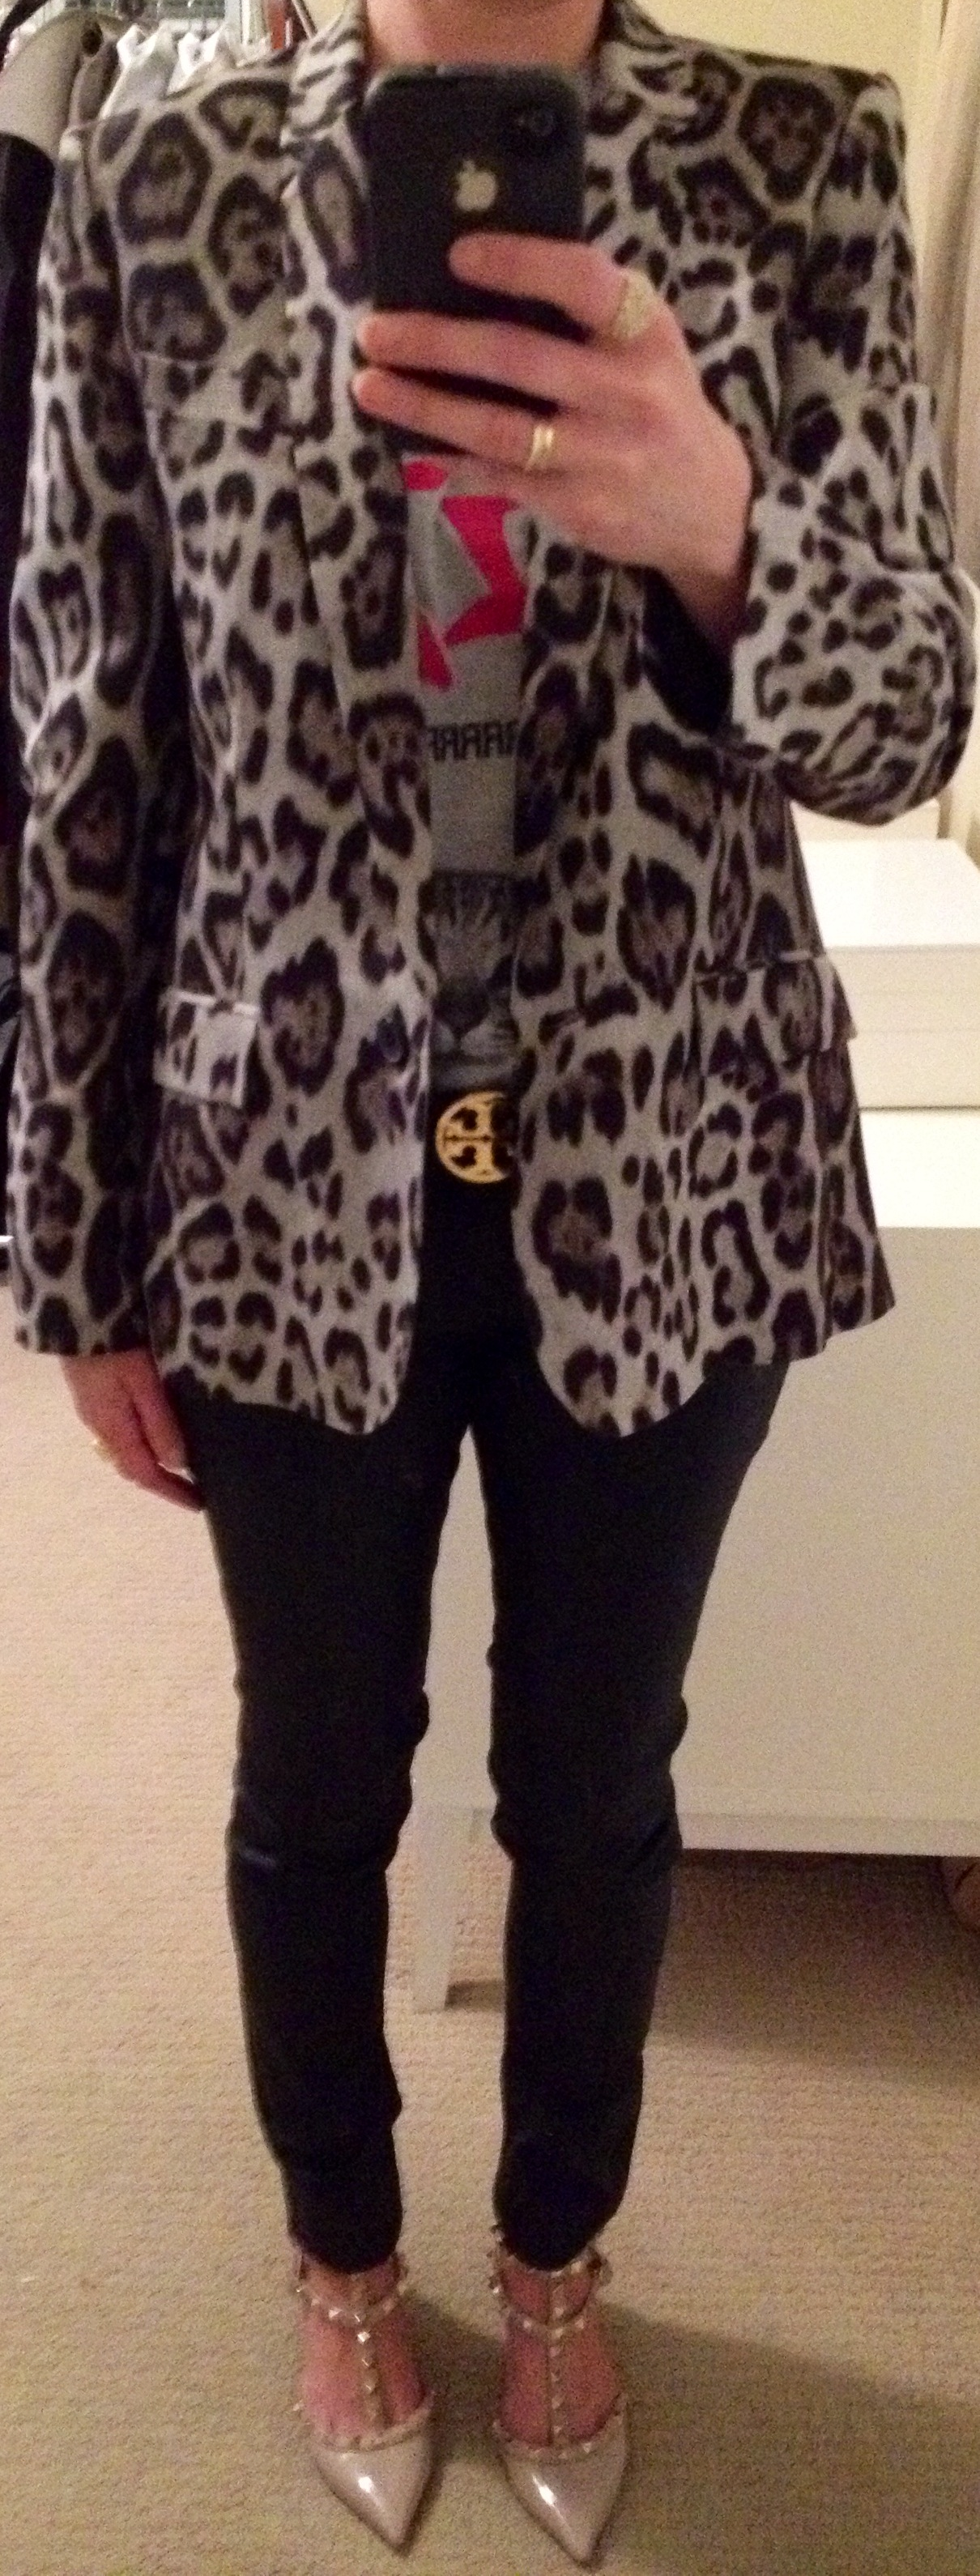 Aug 15, Meow! Leopard Jacket over Kitty Tee from Zara